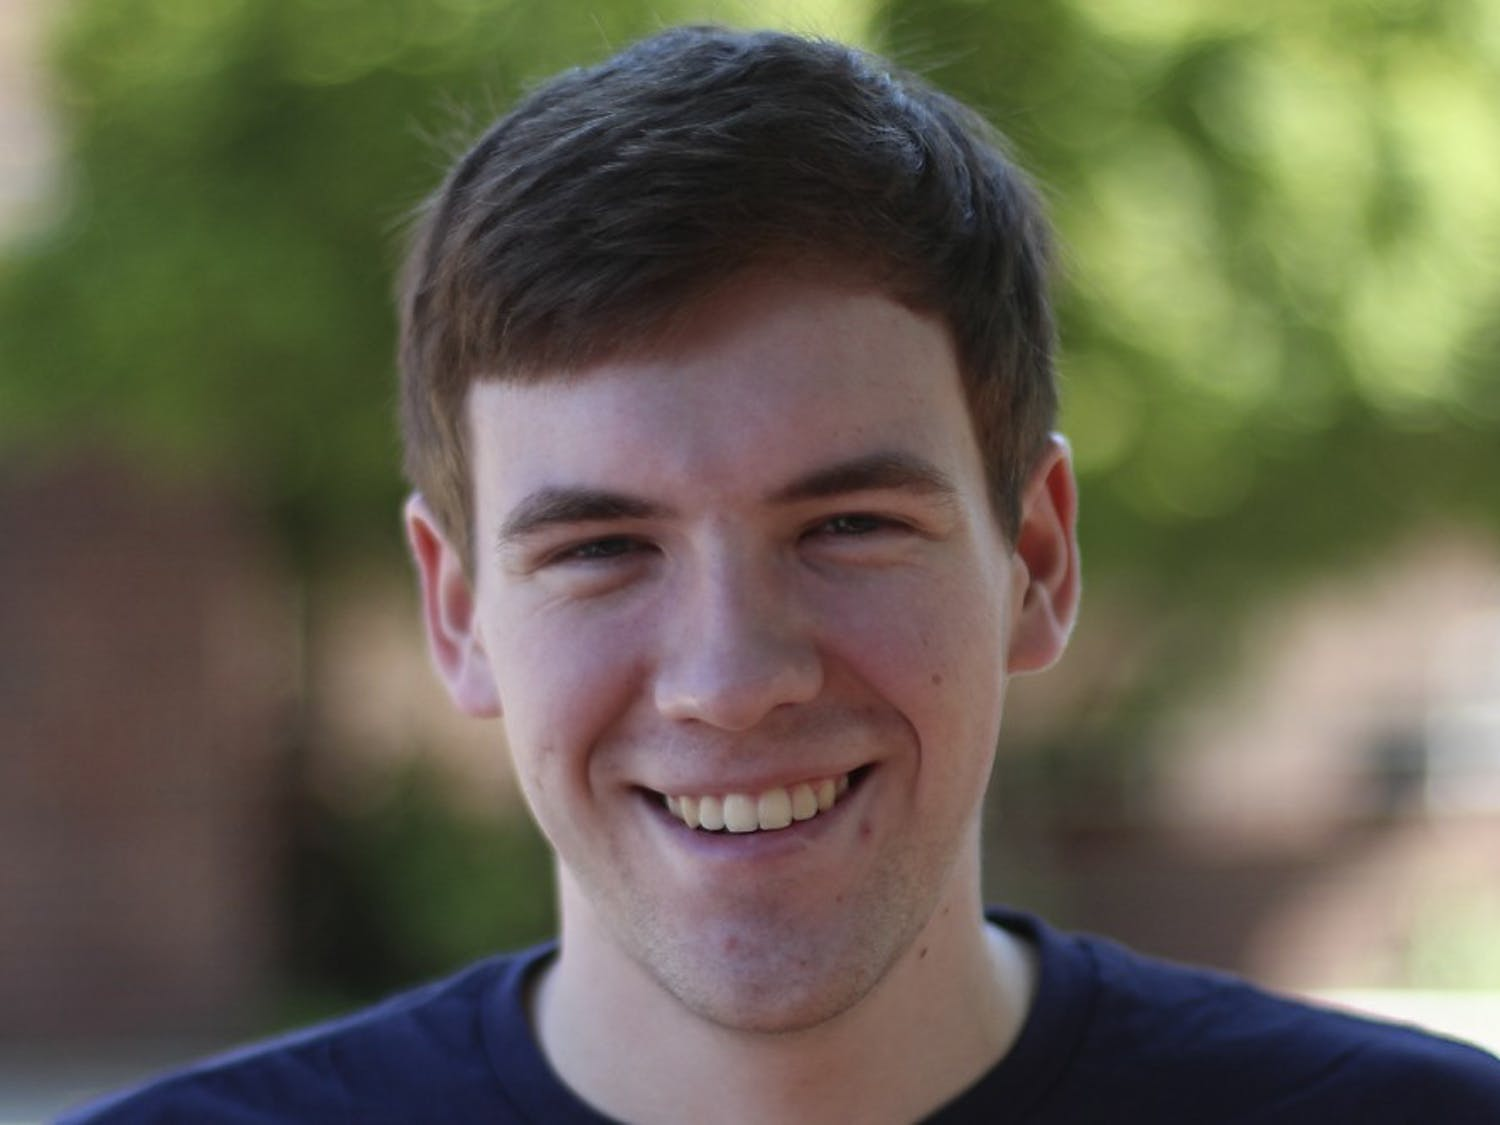 Sam Schaefer is a junior history and public policy major from Chapel Hill.